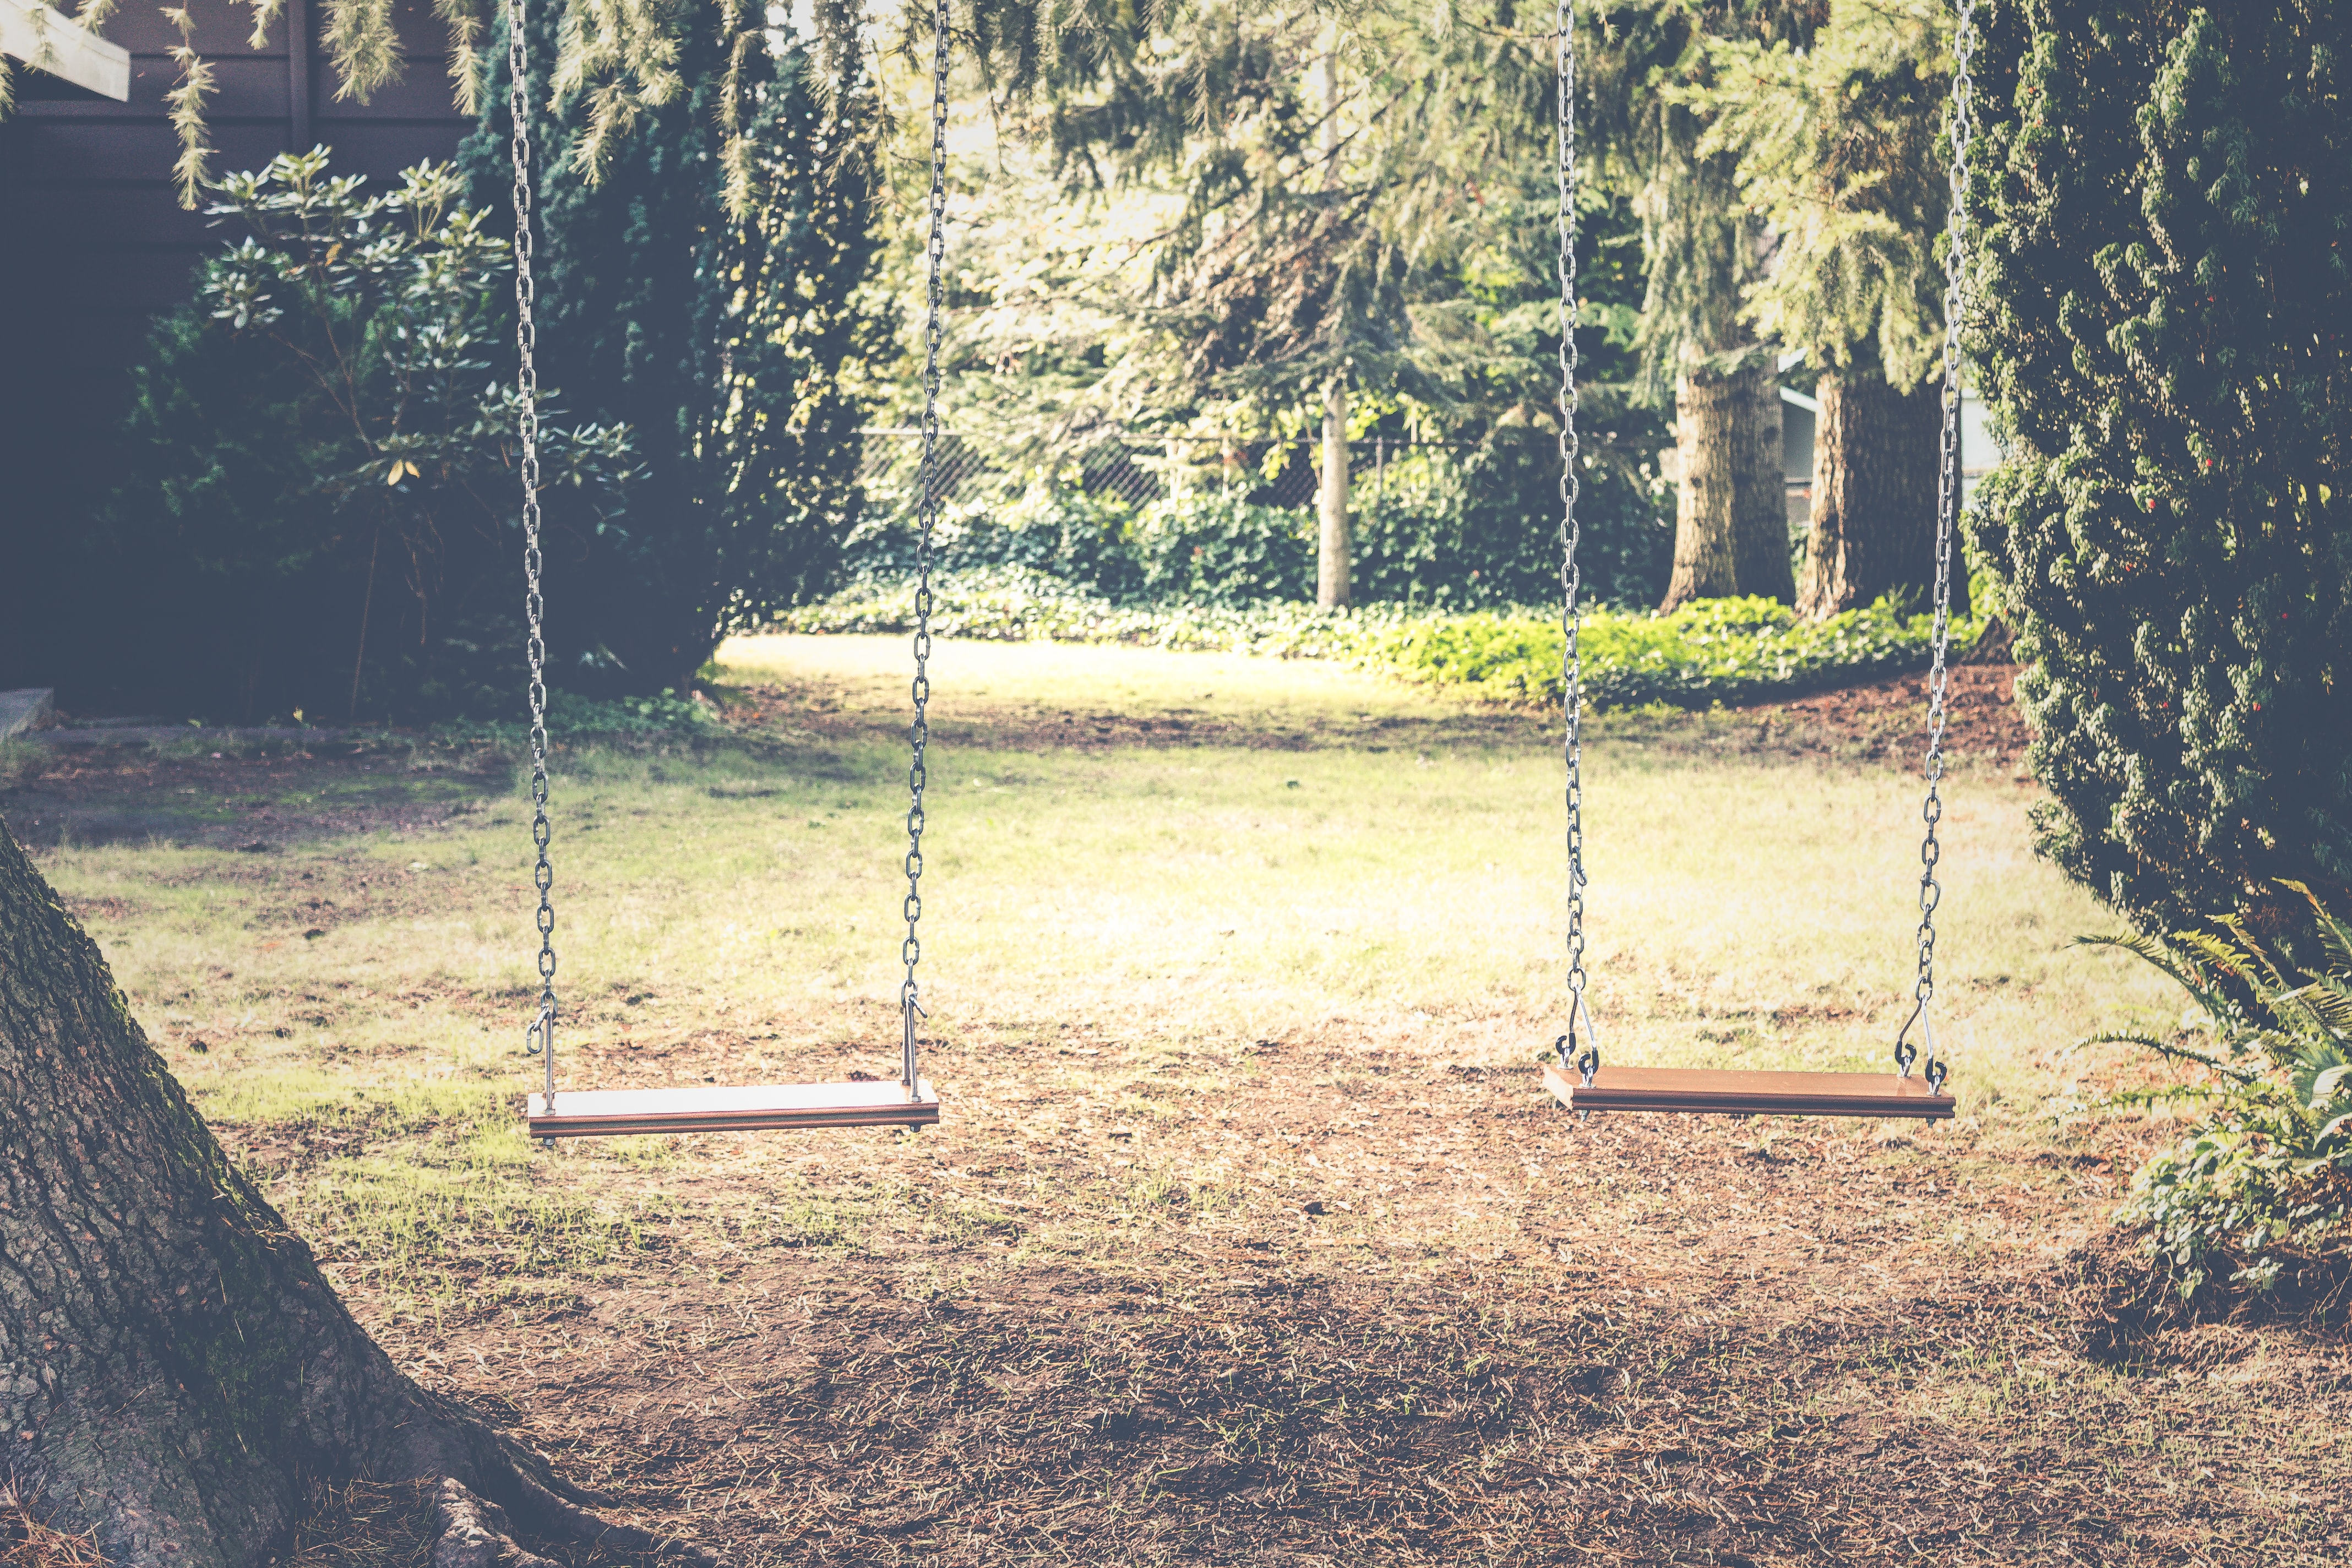 A child's swingset in a playground in a garden